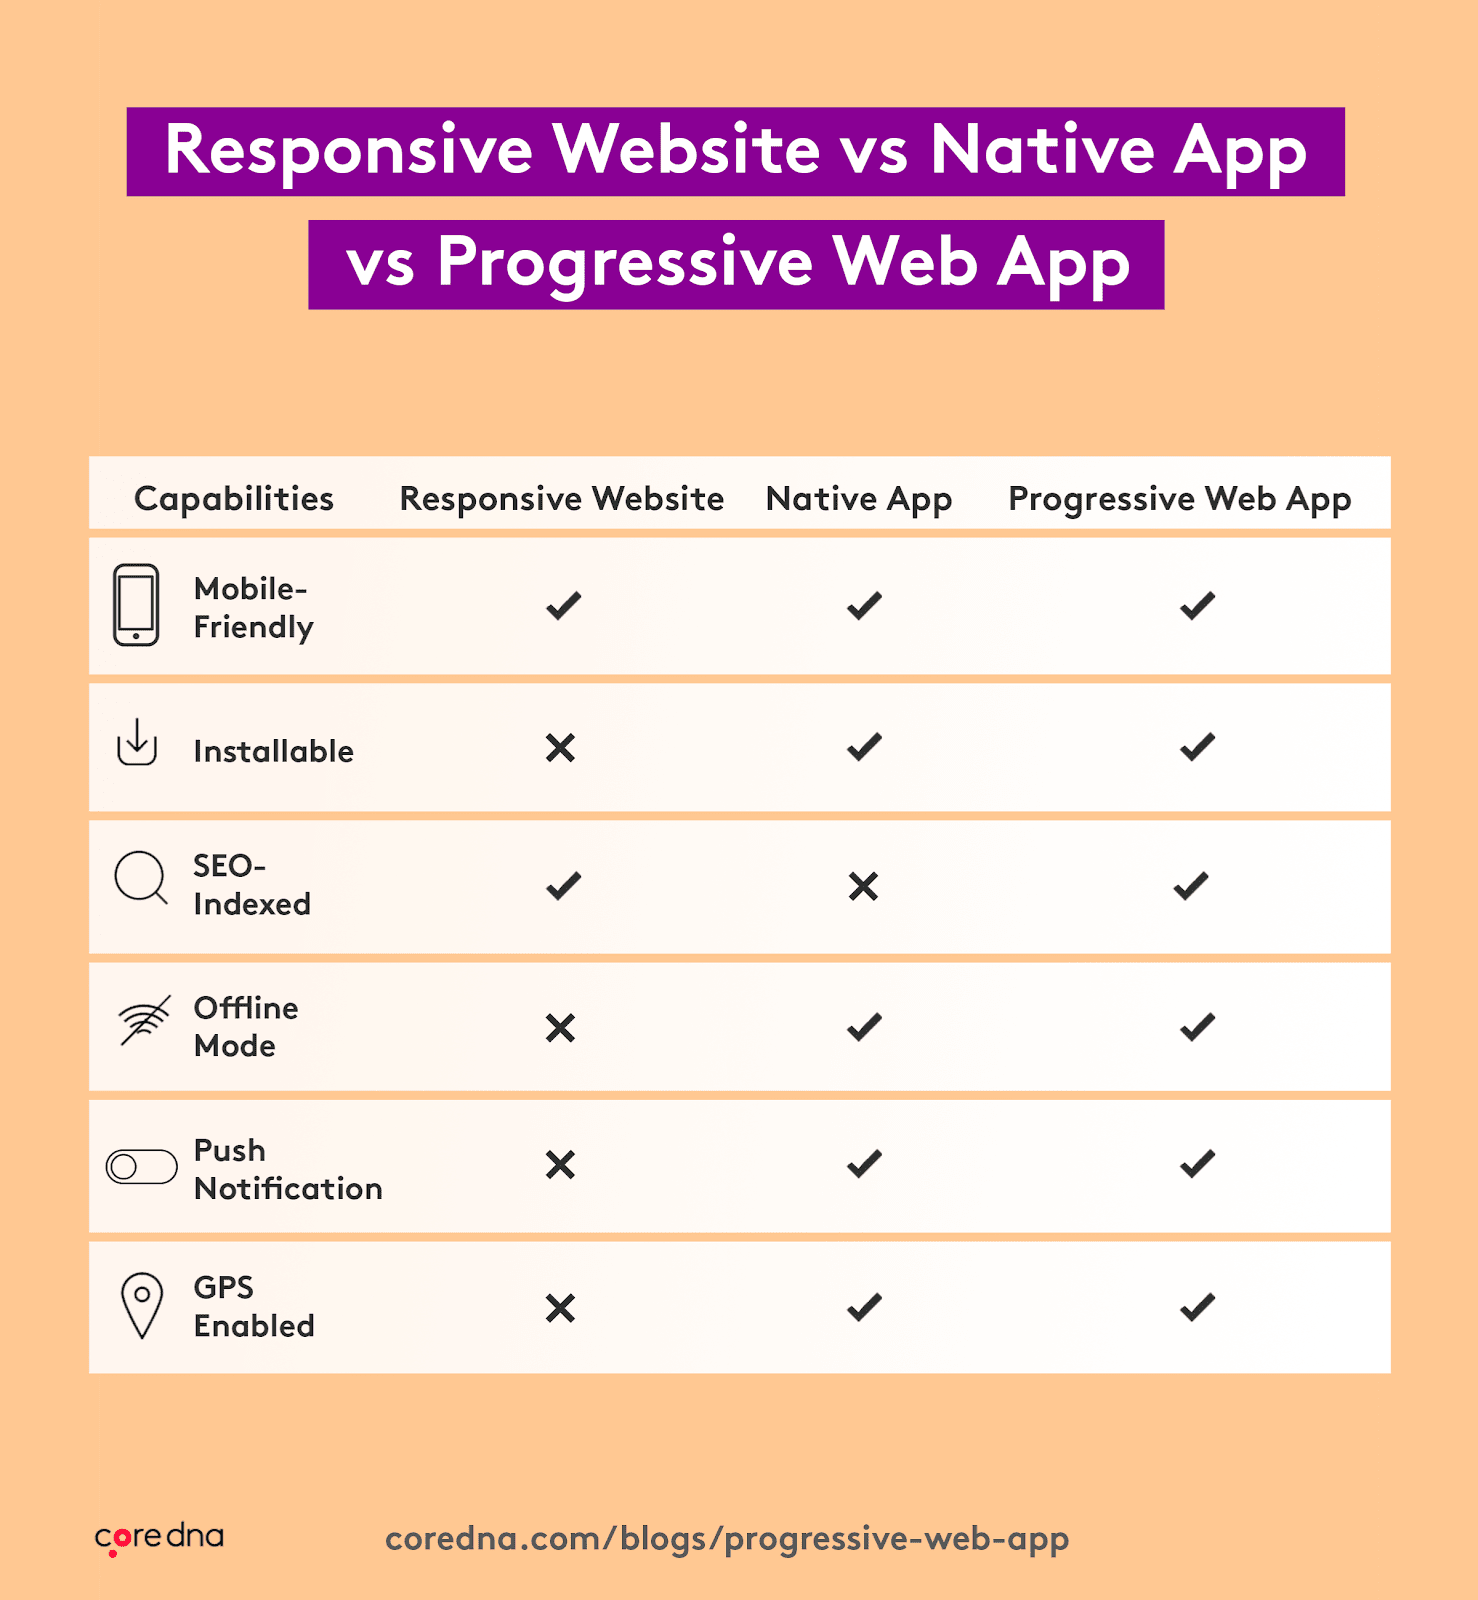 responsive website vs native app